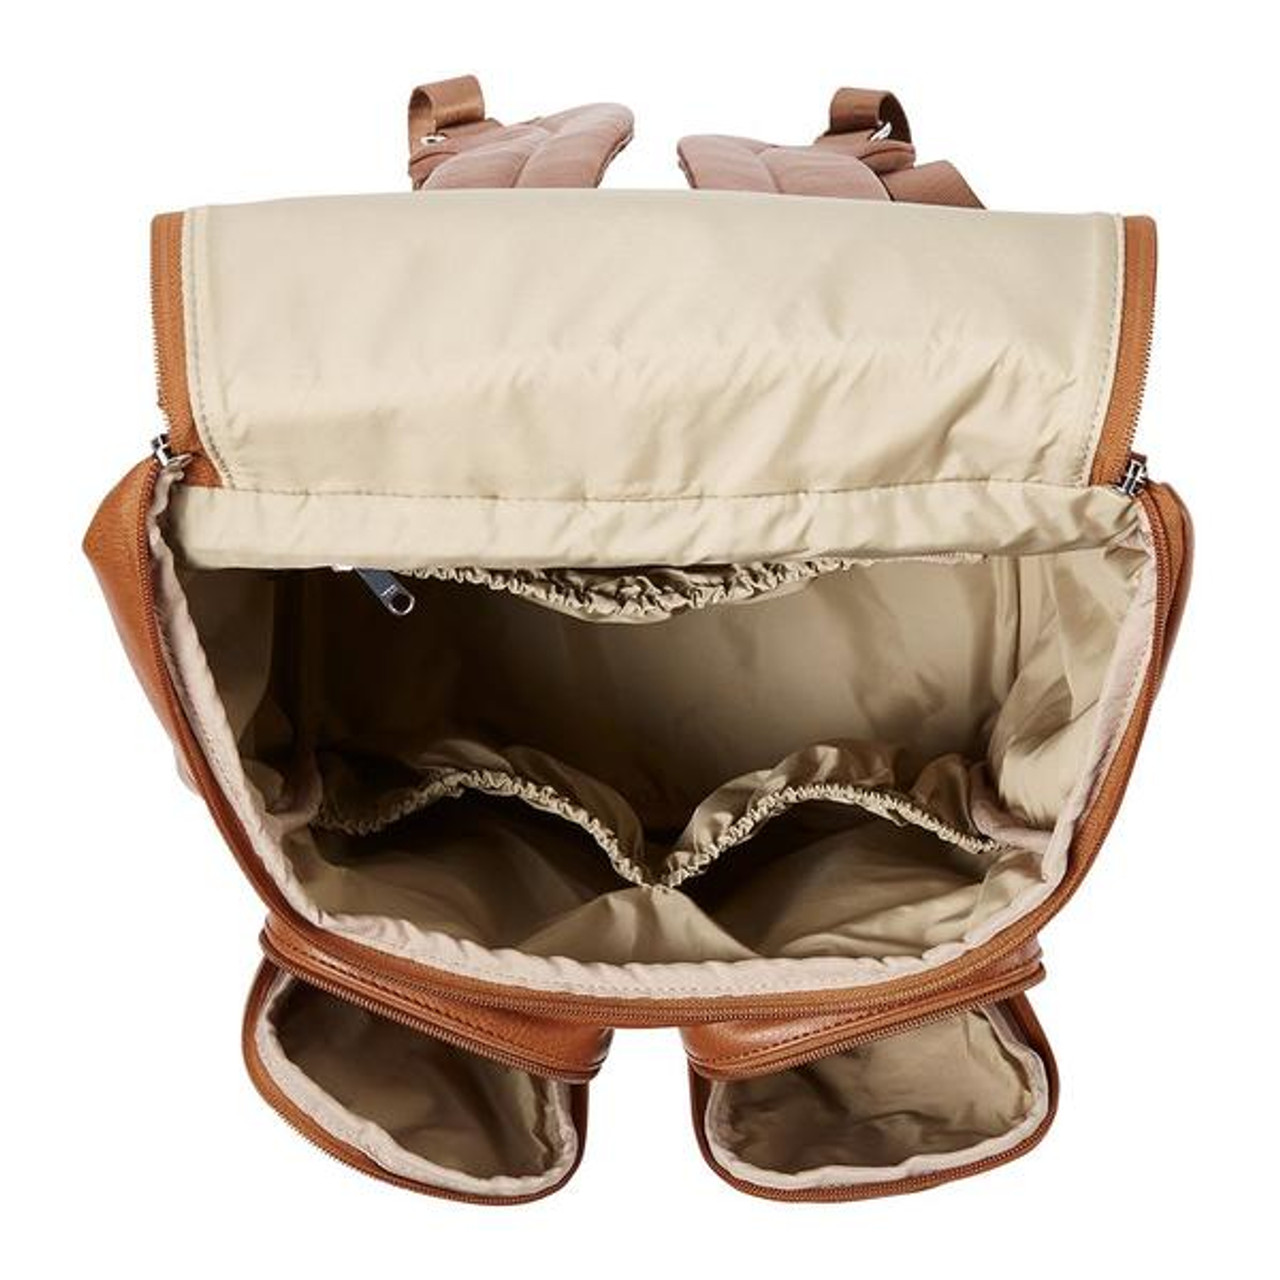 OiOi Faux Leather Nappy Backpack TAN at Baby Barn Discounts